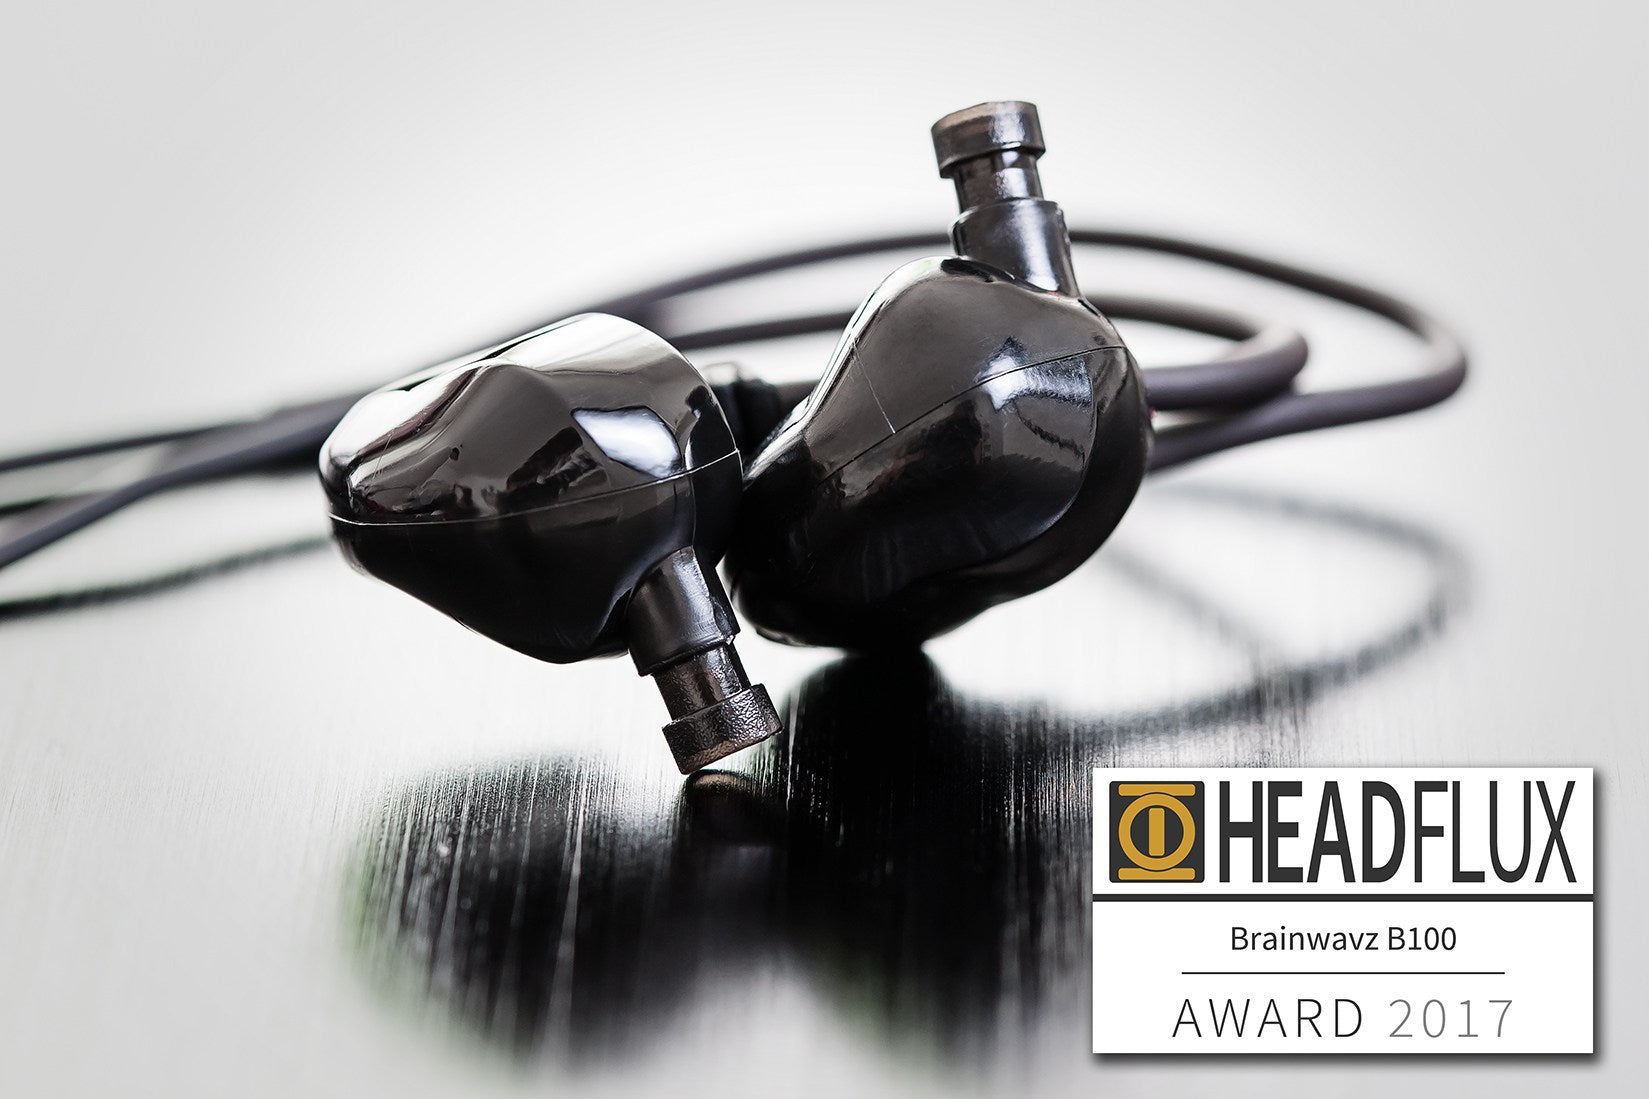 brainwavz headflux B1-- award winner